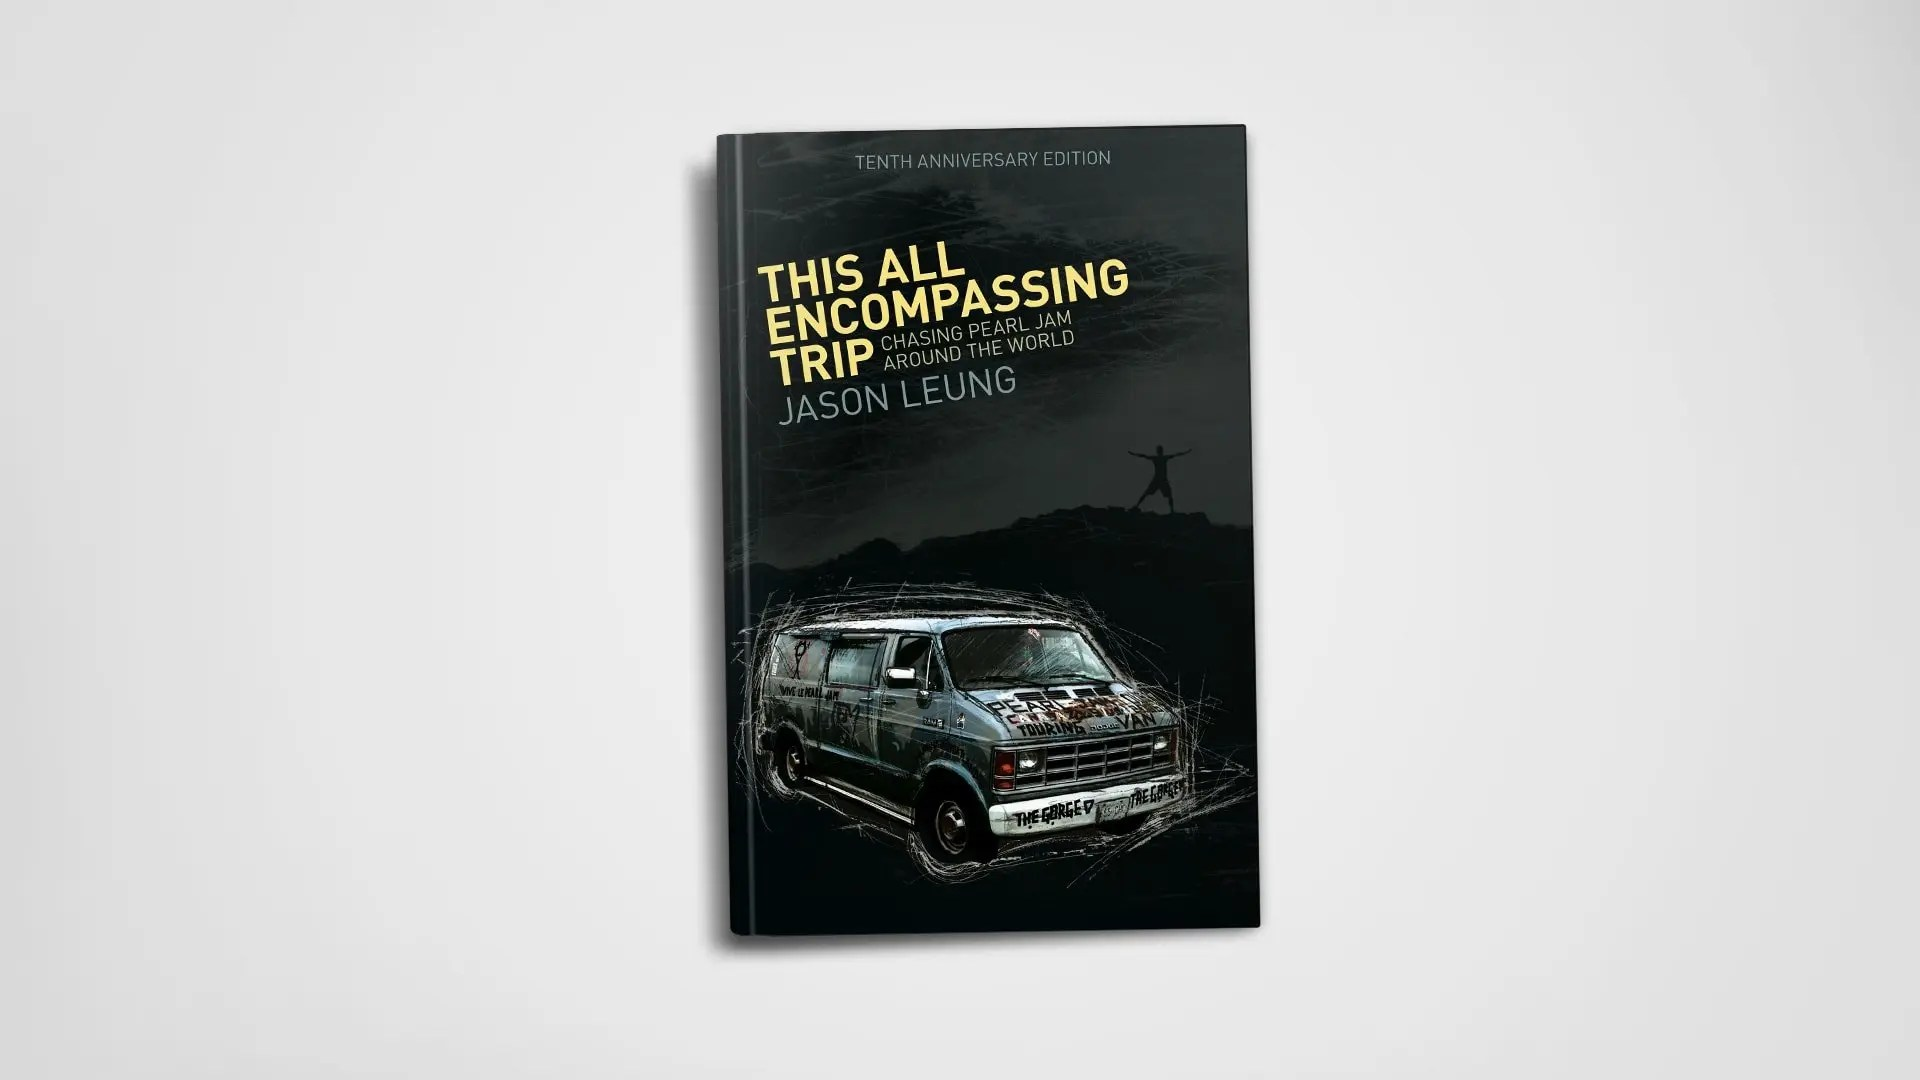 This All Encompassing Trip Hardcover